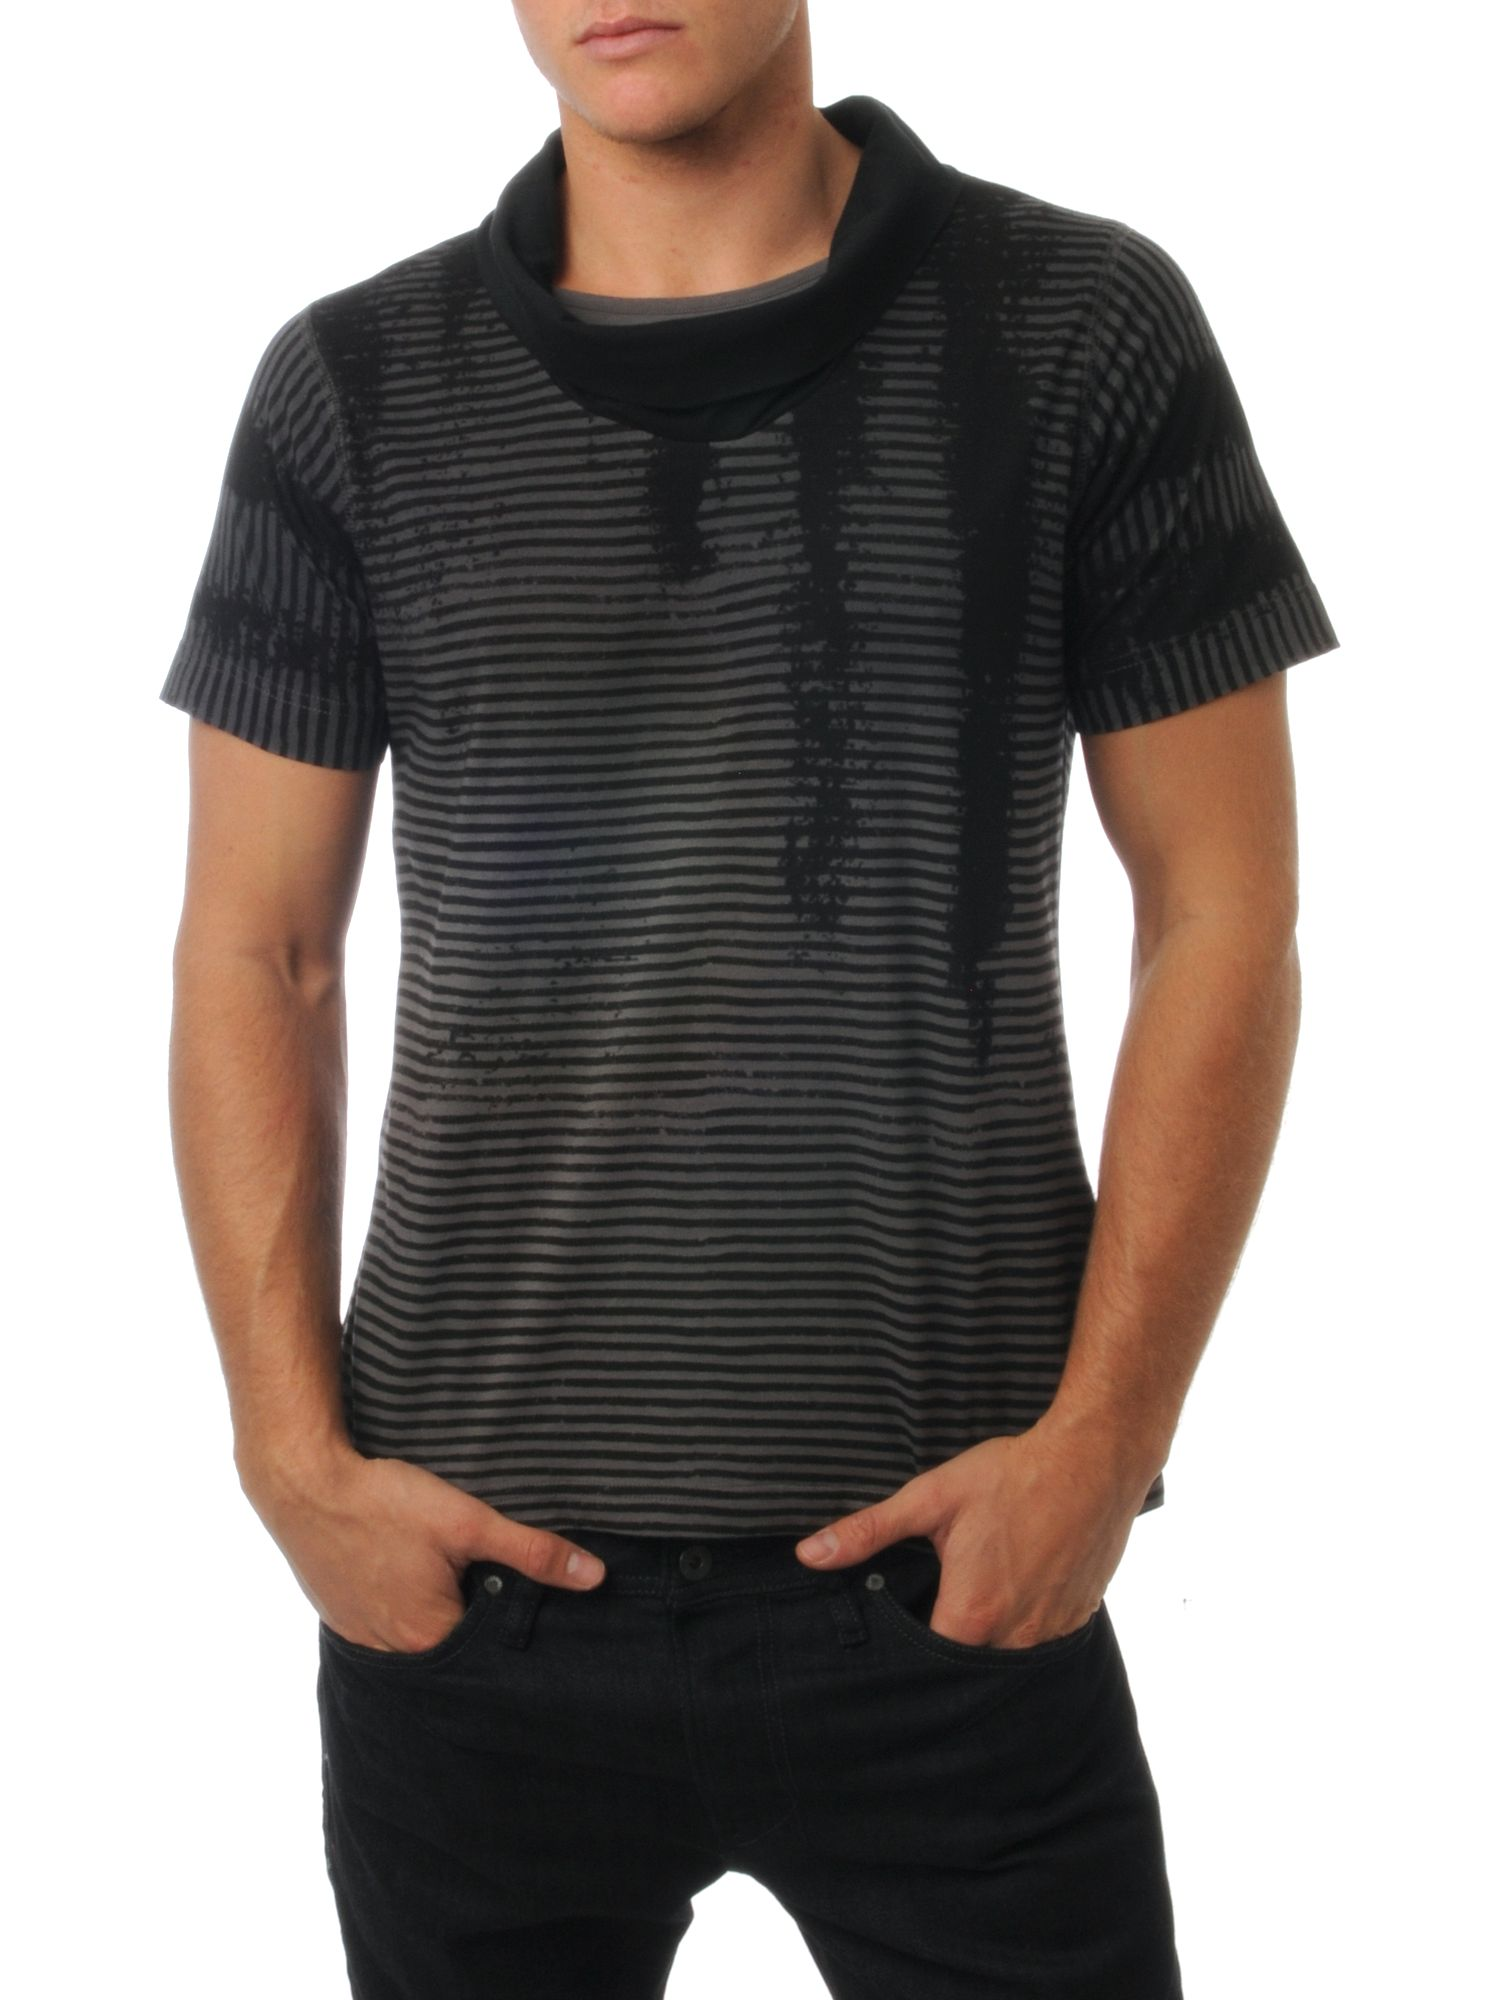 Ringspun striped shawl neck t shirt black review for Shawl collar t shirt